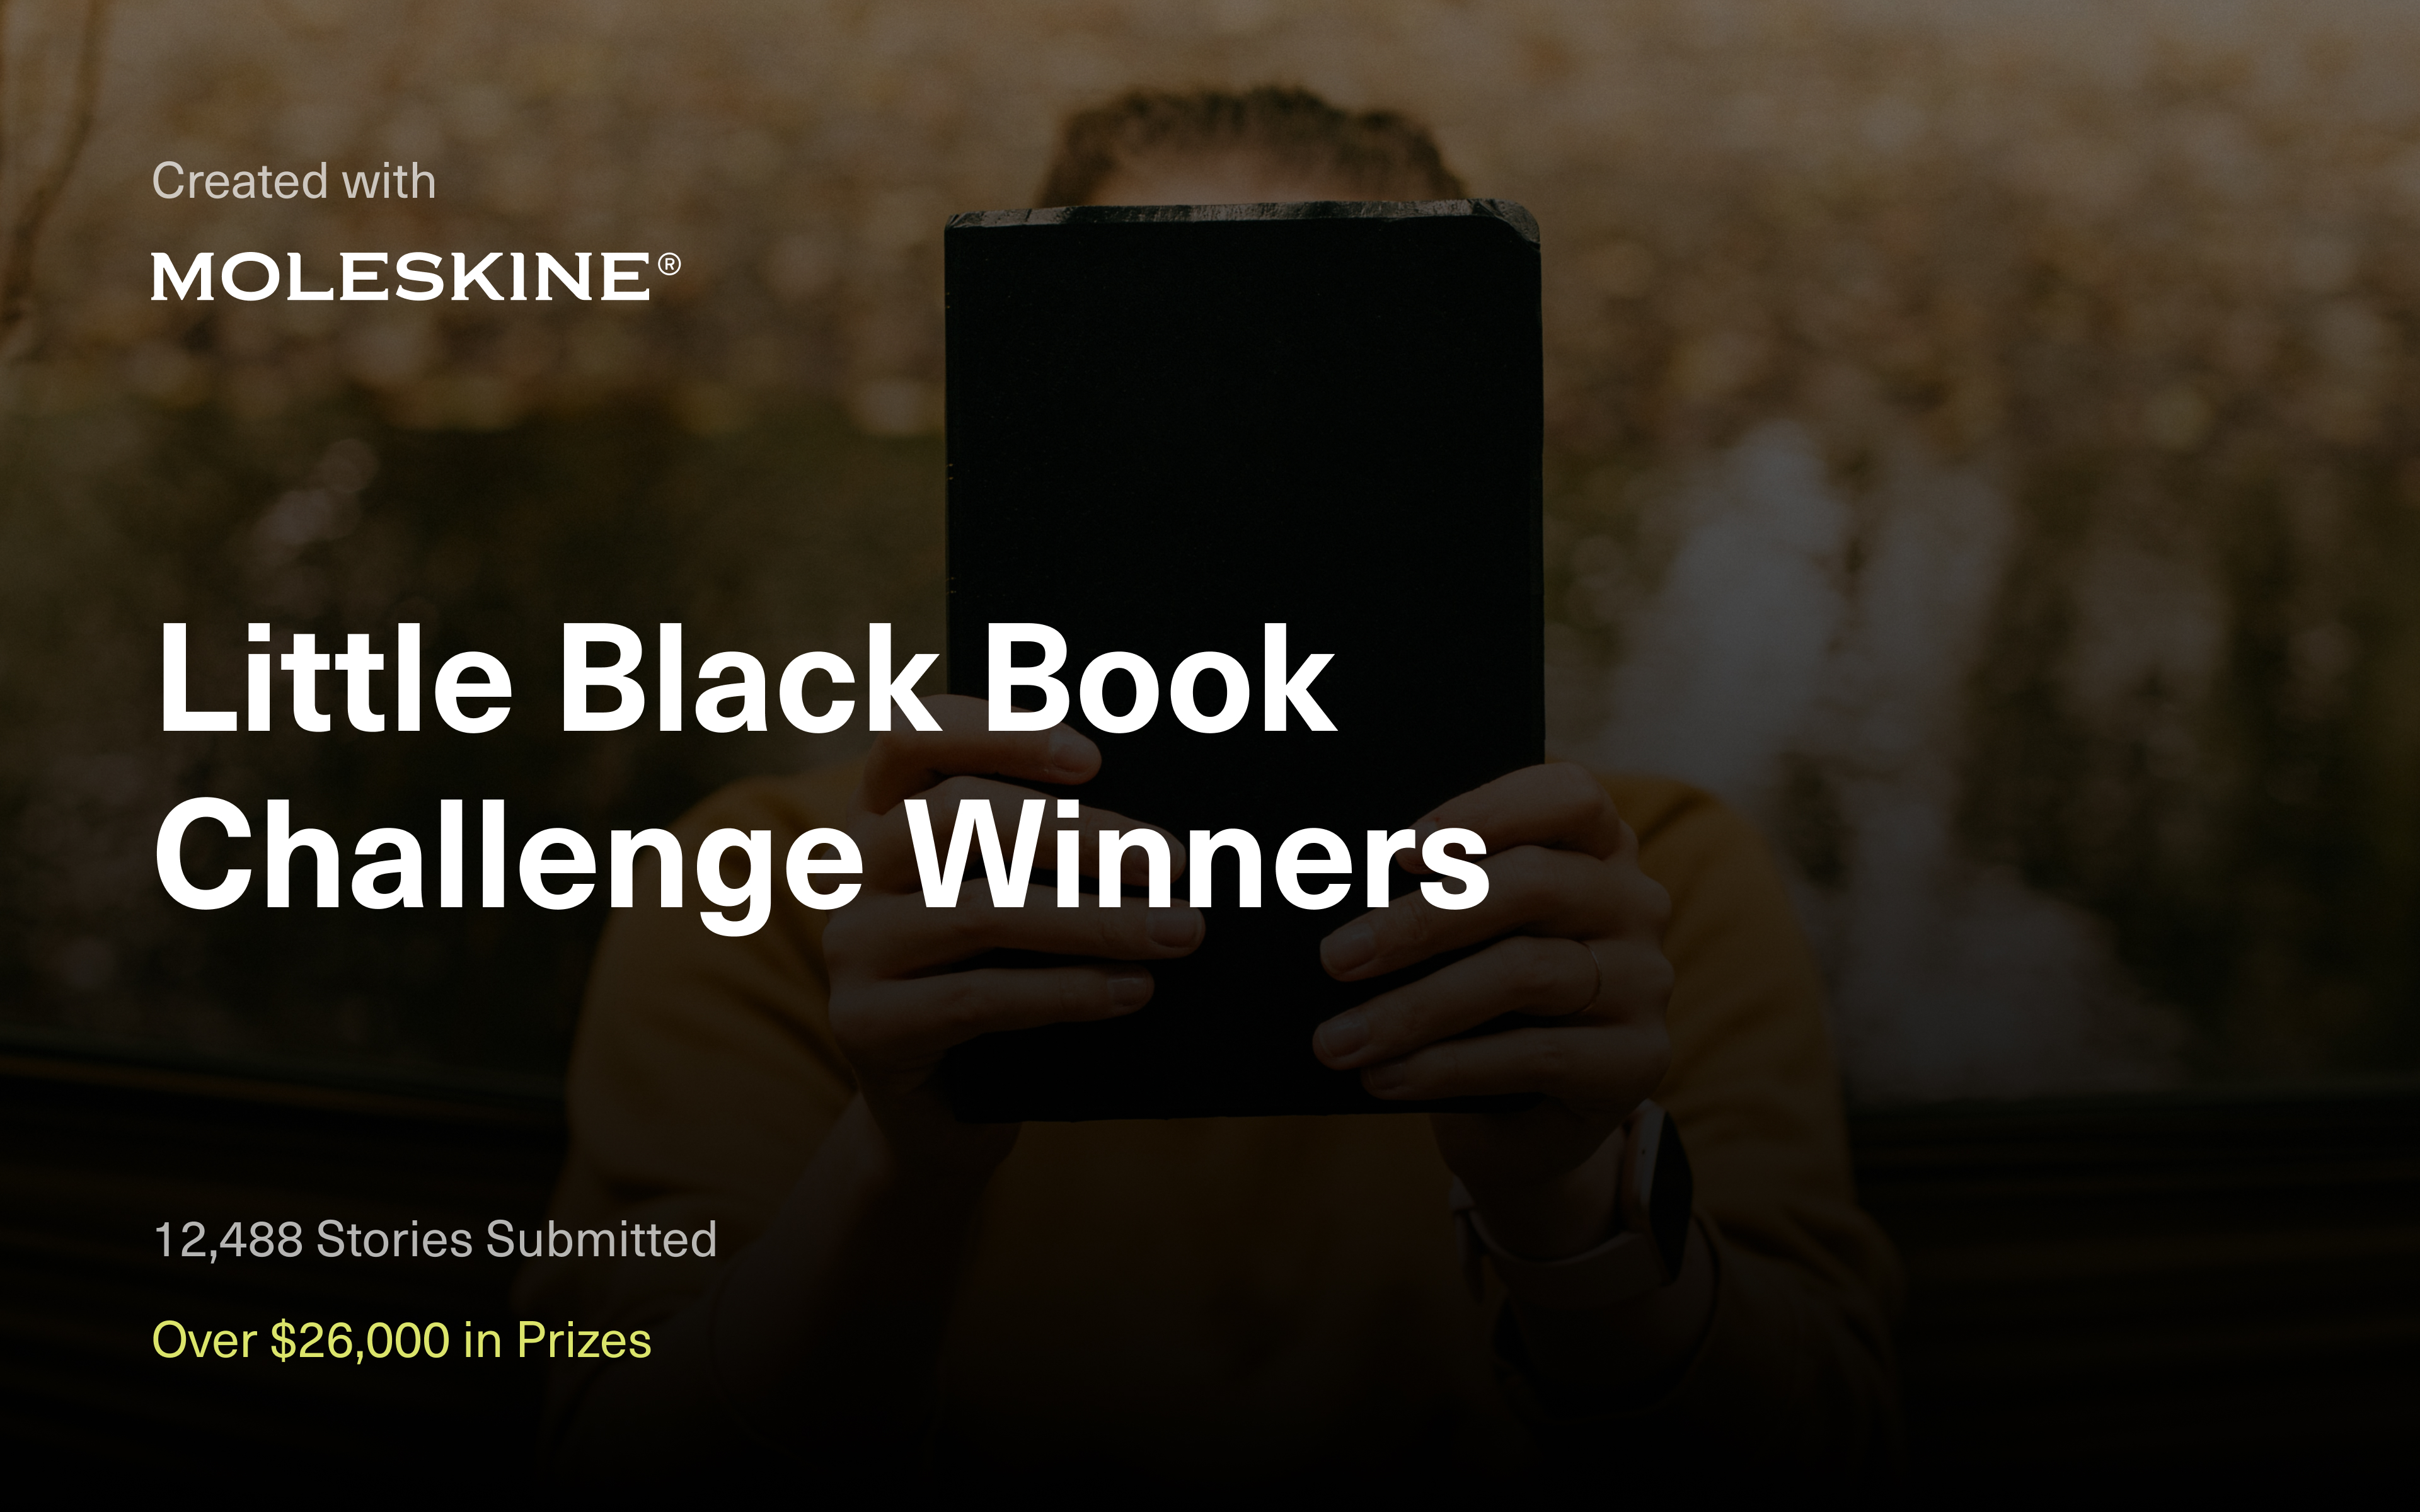 Little Black Book Challenge Winners